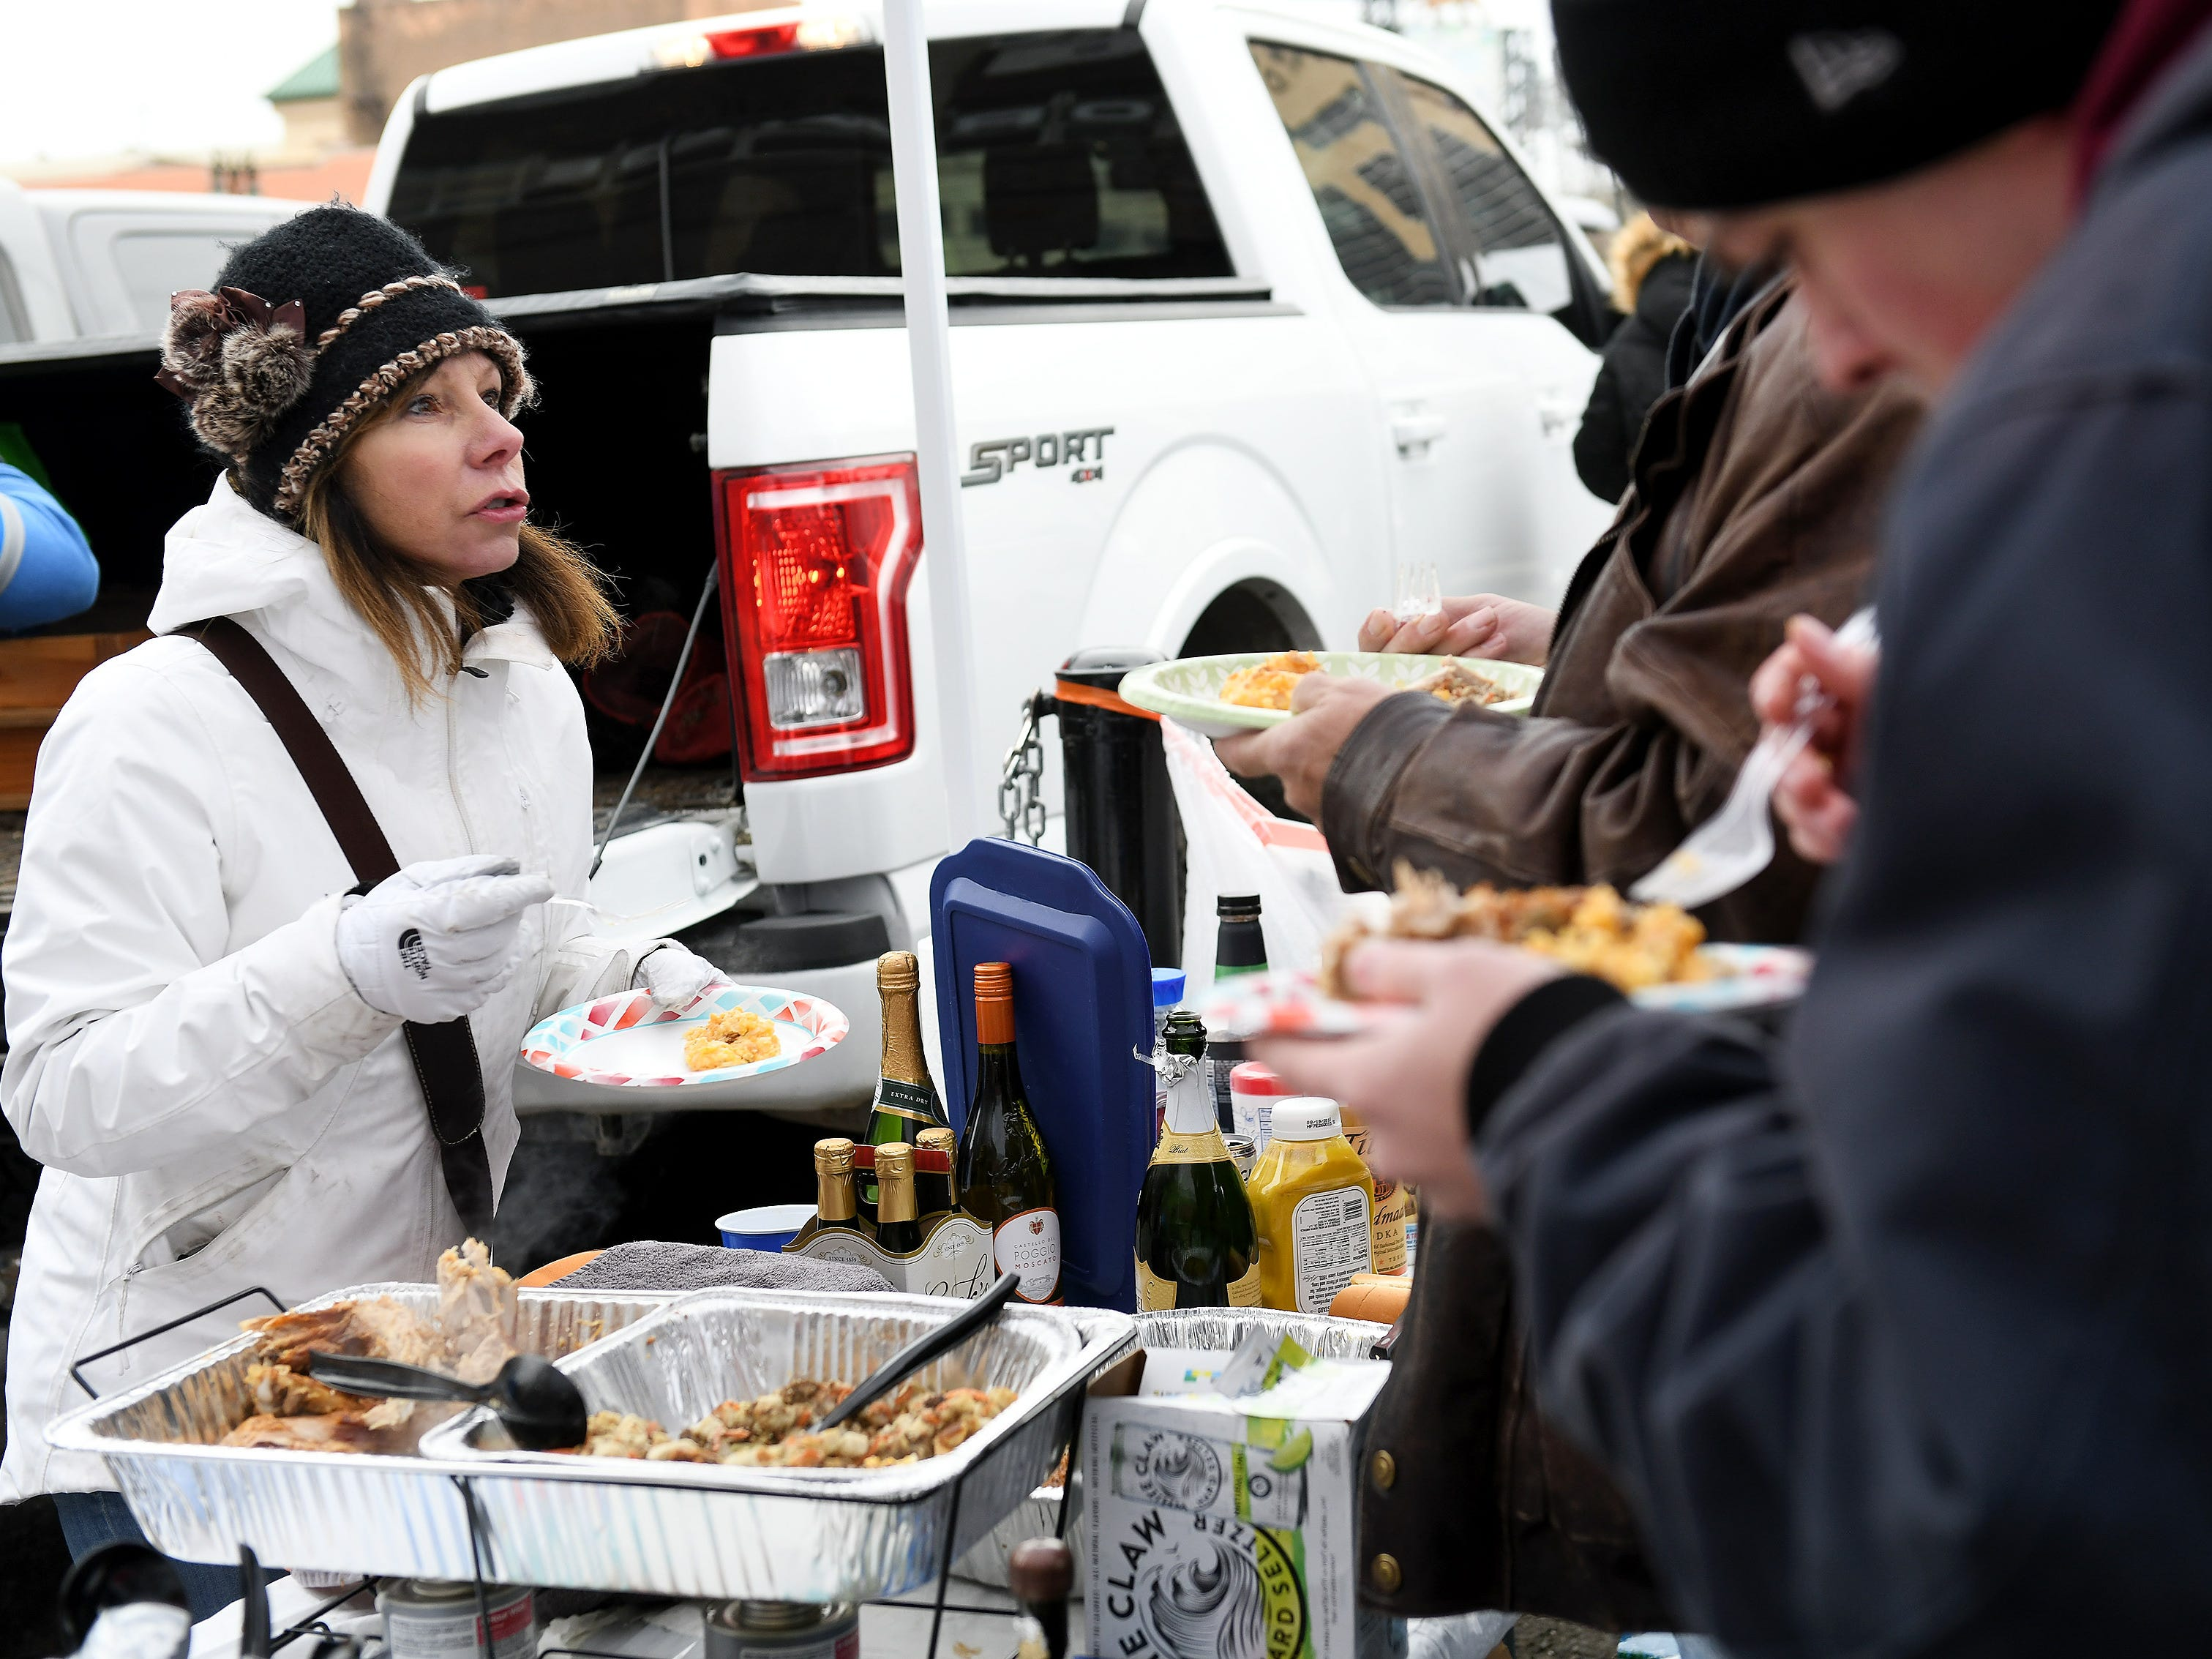 Linda Bonell of Plymouth eats some of the turkey dinner she made for everyone during tailgating before the game.  Detroit Lions vs Chicago Bears on Thanksgiving Day at Ford Field in Detroit on Nov. 22, 2018.